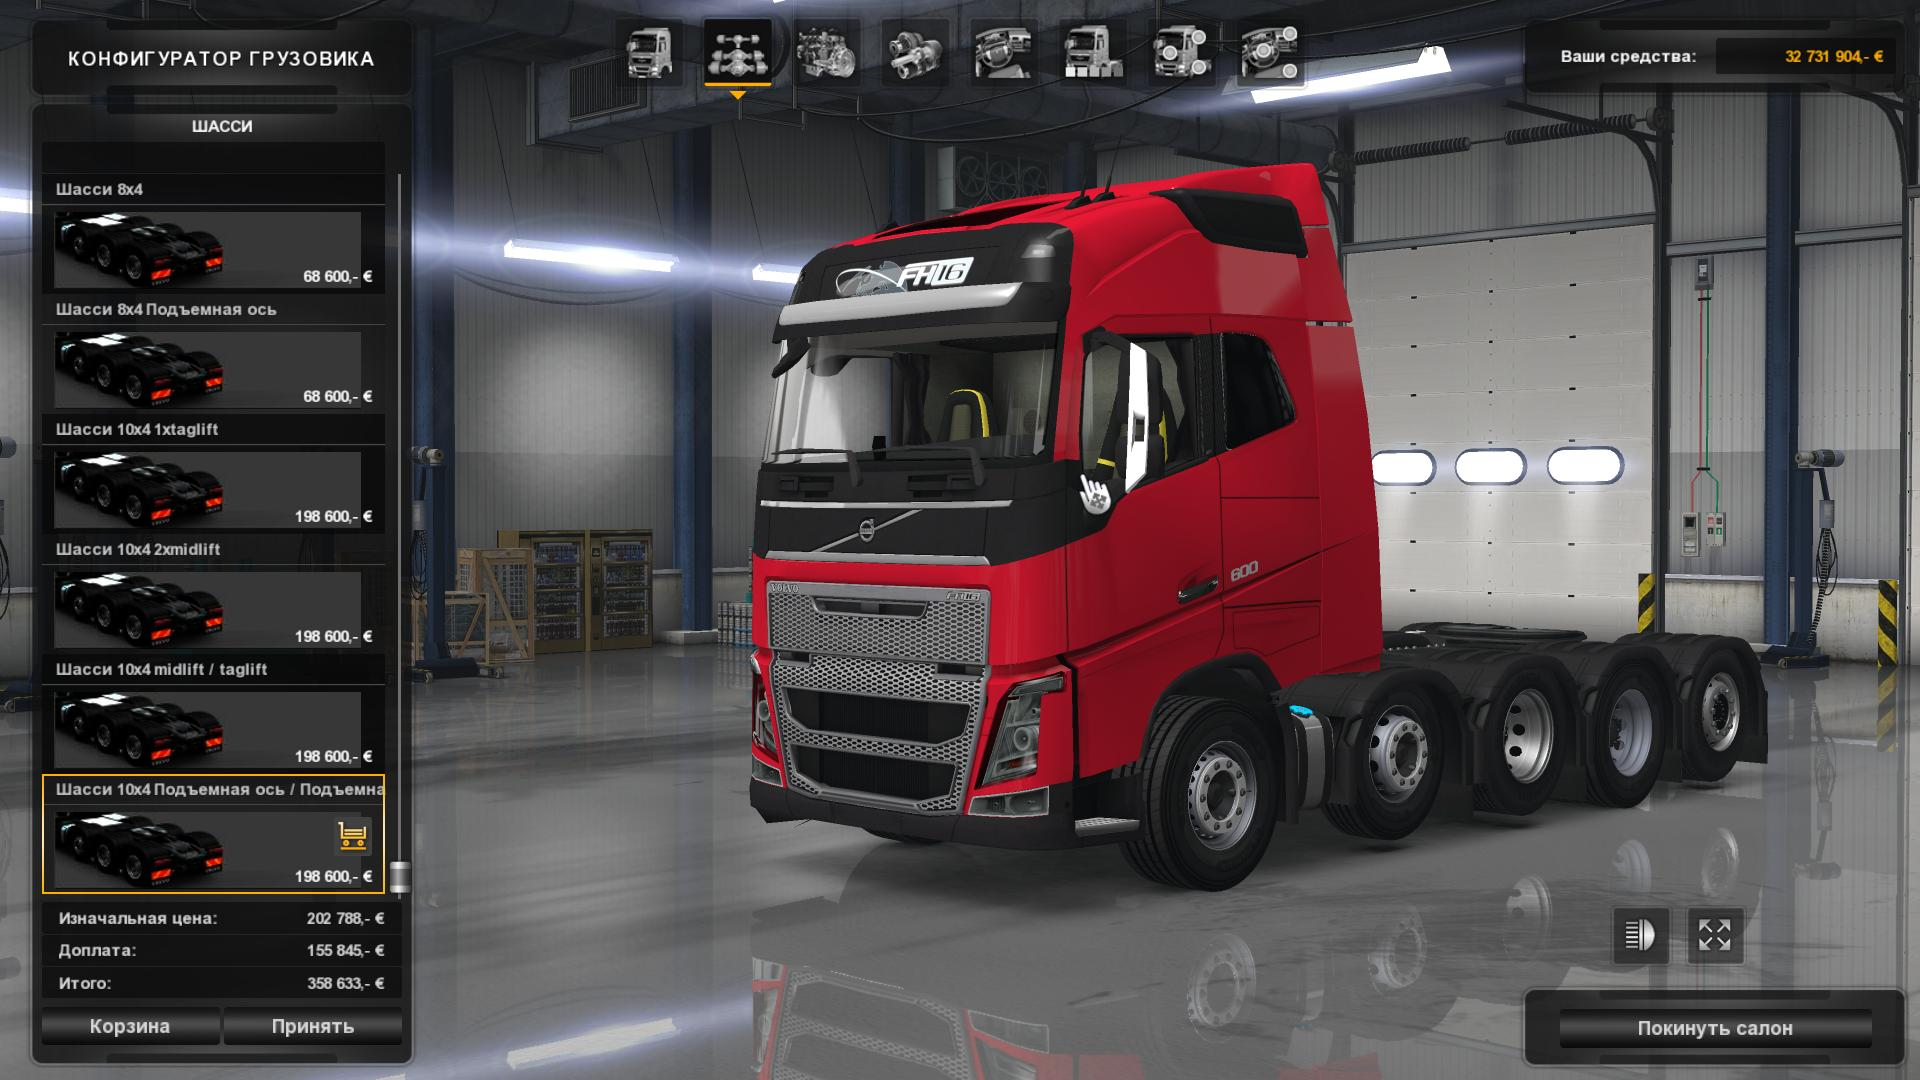 2012 Volvo Fh 8x4 And 10x4 Ets2 1 24 X X Ets2 Euro Truck